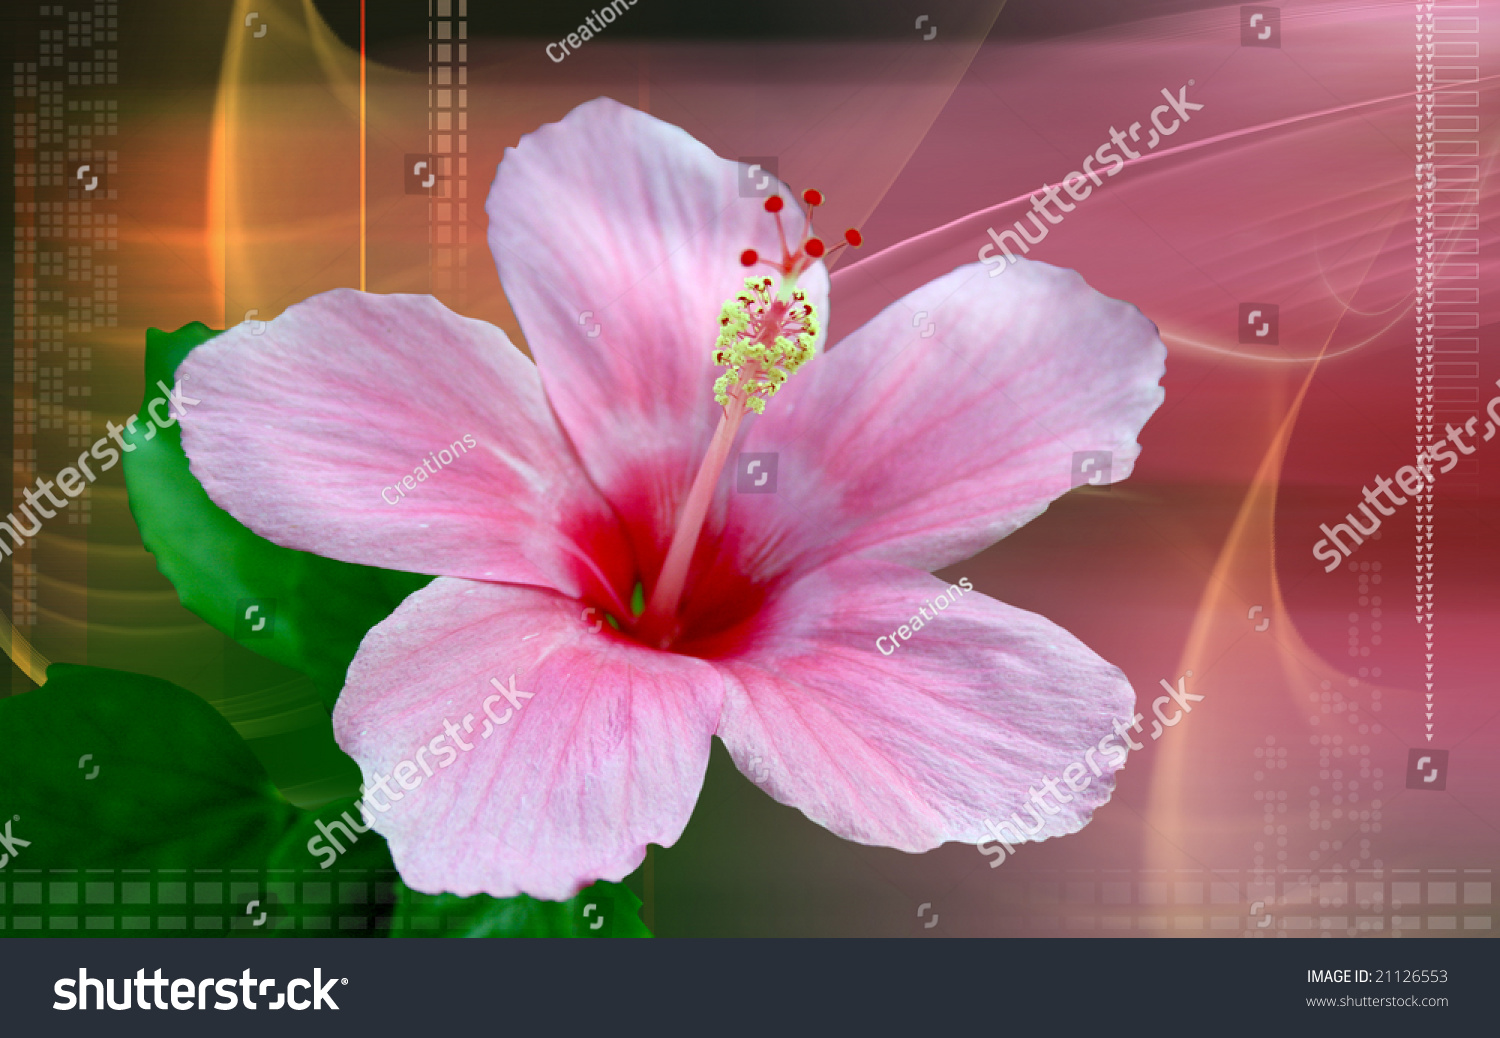 Photograph isolated pink hibiscus flower stock illustration photograph of an isolated pink hibiscus flower pooptronica Image collections